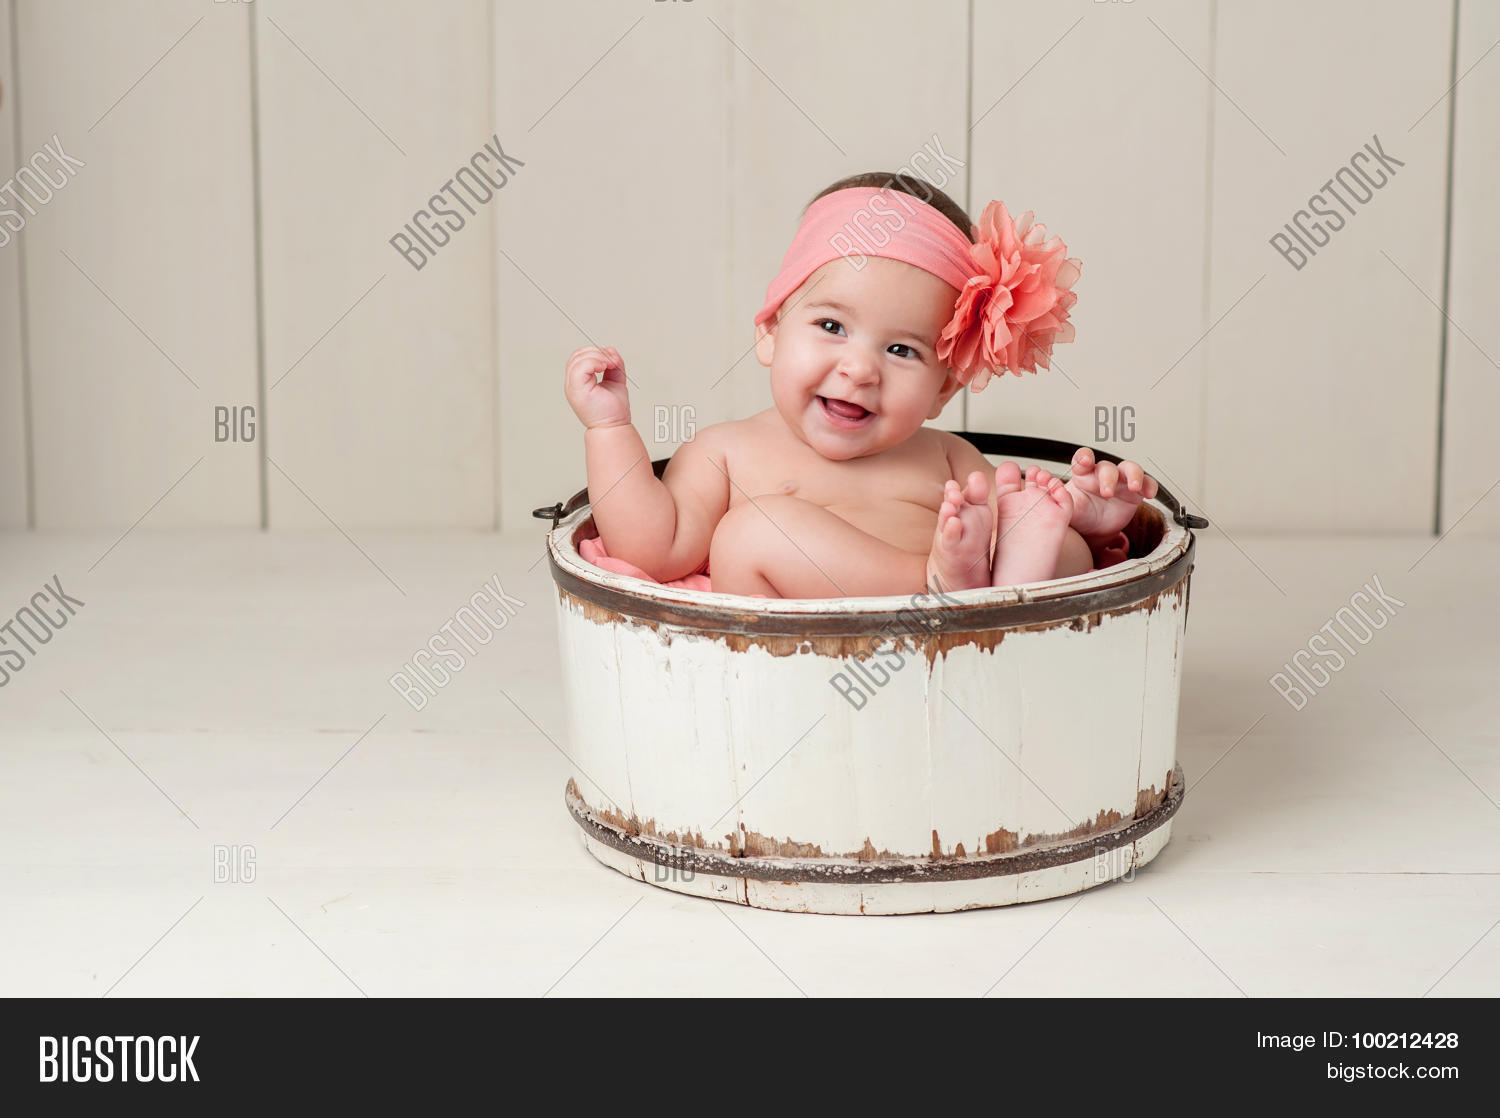 5-6,6,6-7,adorable,alert,baby,beige,bucket,cheerful,colored,cream,cute,fashioned,female,flower,girl,happy,headband,human,infant,innocence,innocent,joy,joyful,laugh,laughing,month,old,old-fashioned,one,paneling,peach,person,portrait,sit,sitting,six,smile,smiling,vintage,white,wood,wooden